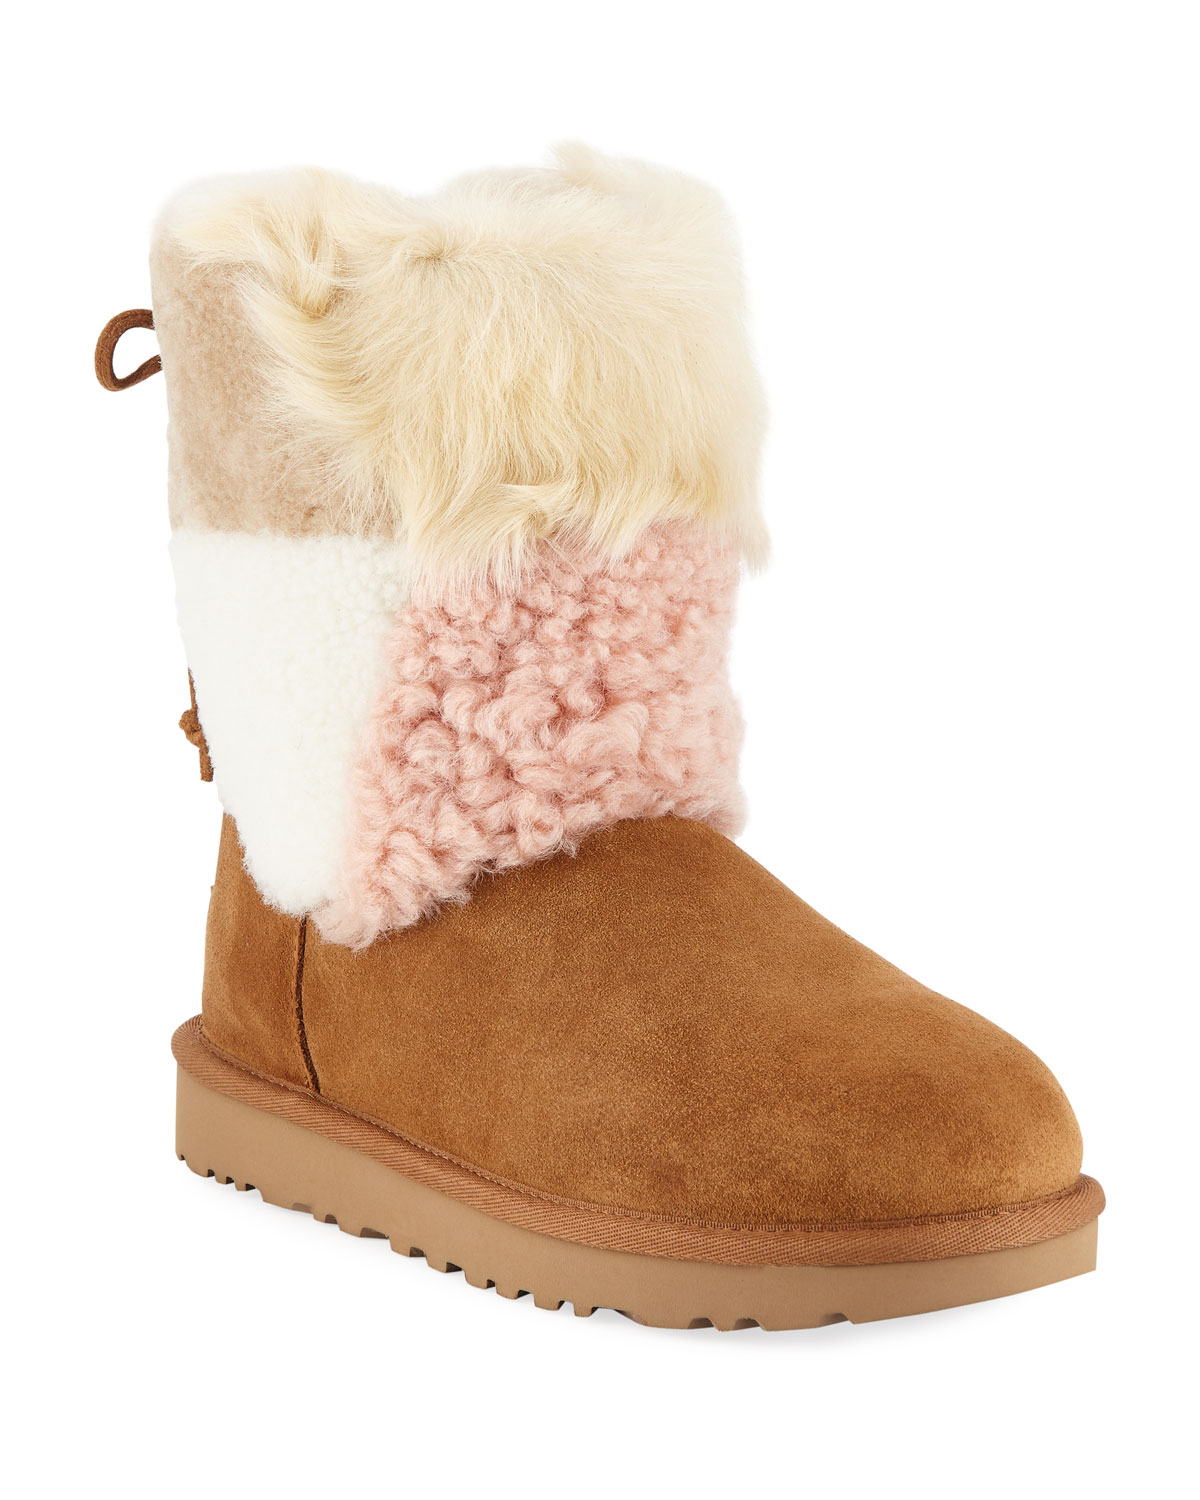 0cfbeee8964d UGG Classic Patchwork Fluff Boots